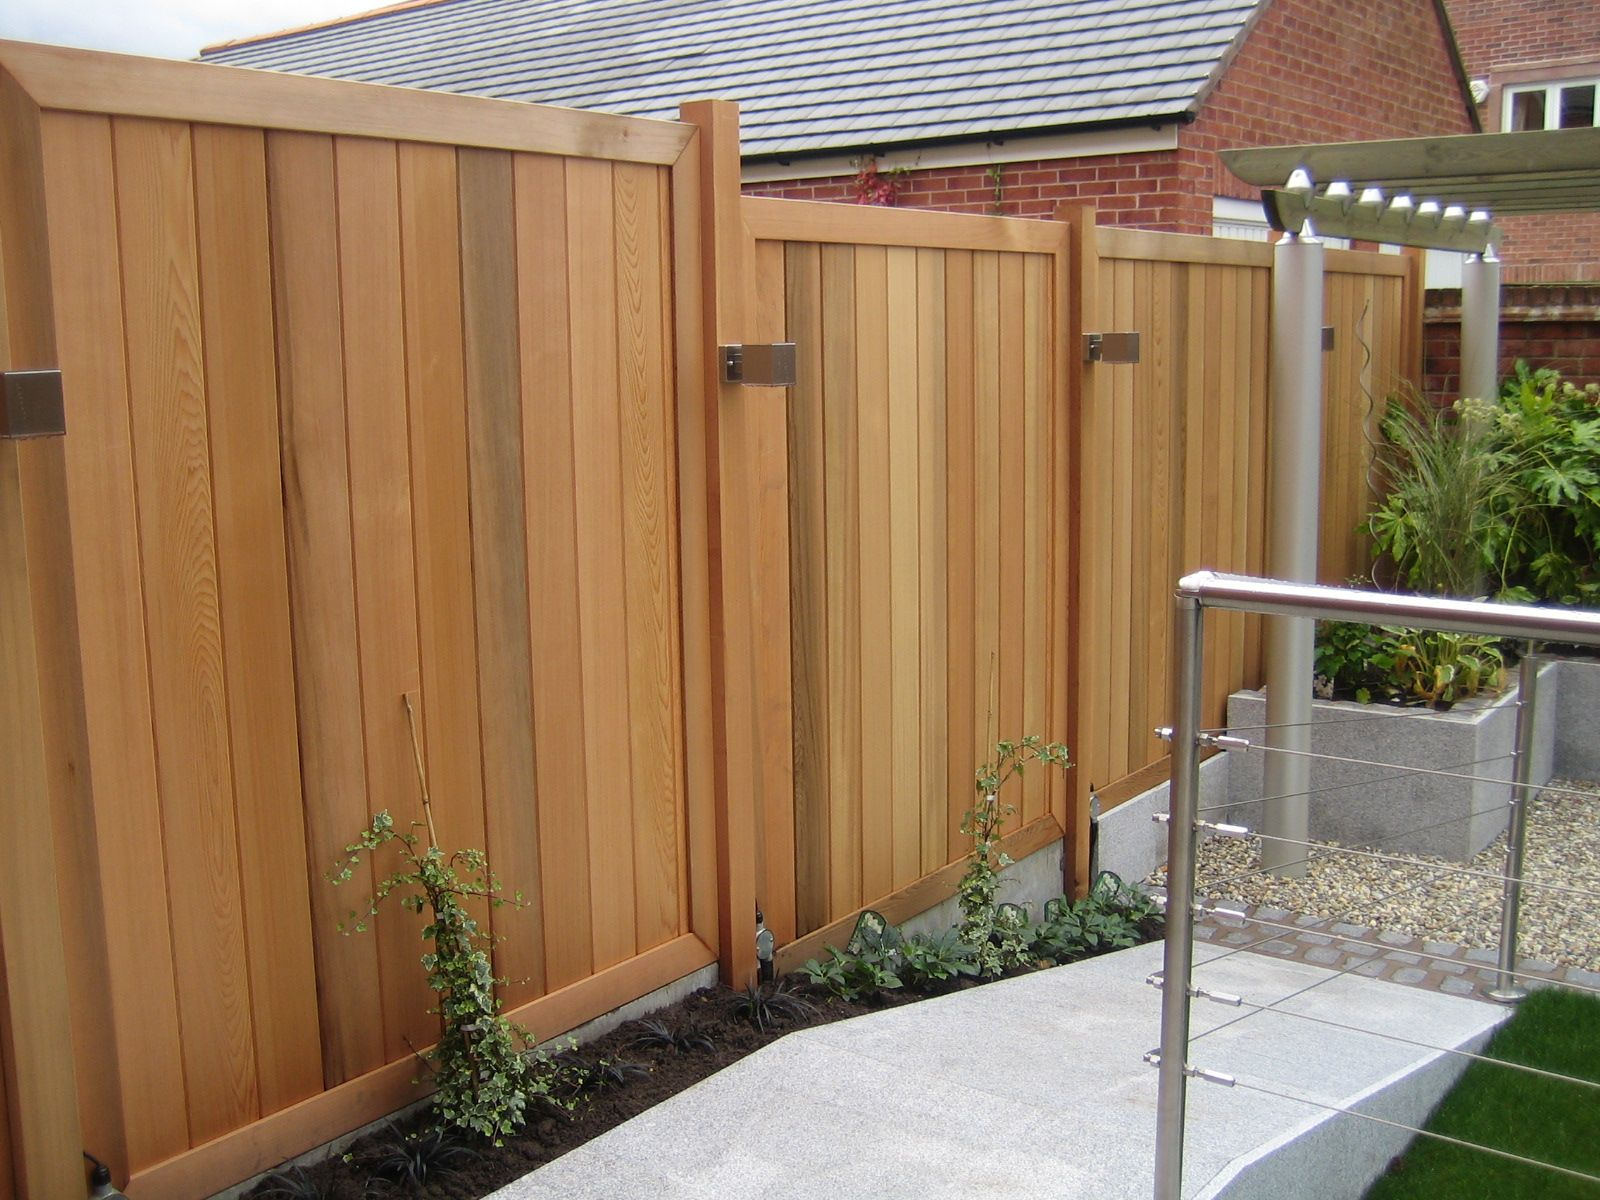 contemporary cedar fencing panels and posts with stainless steel